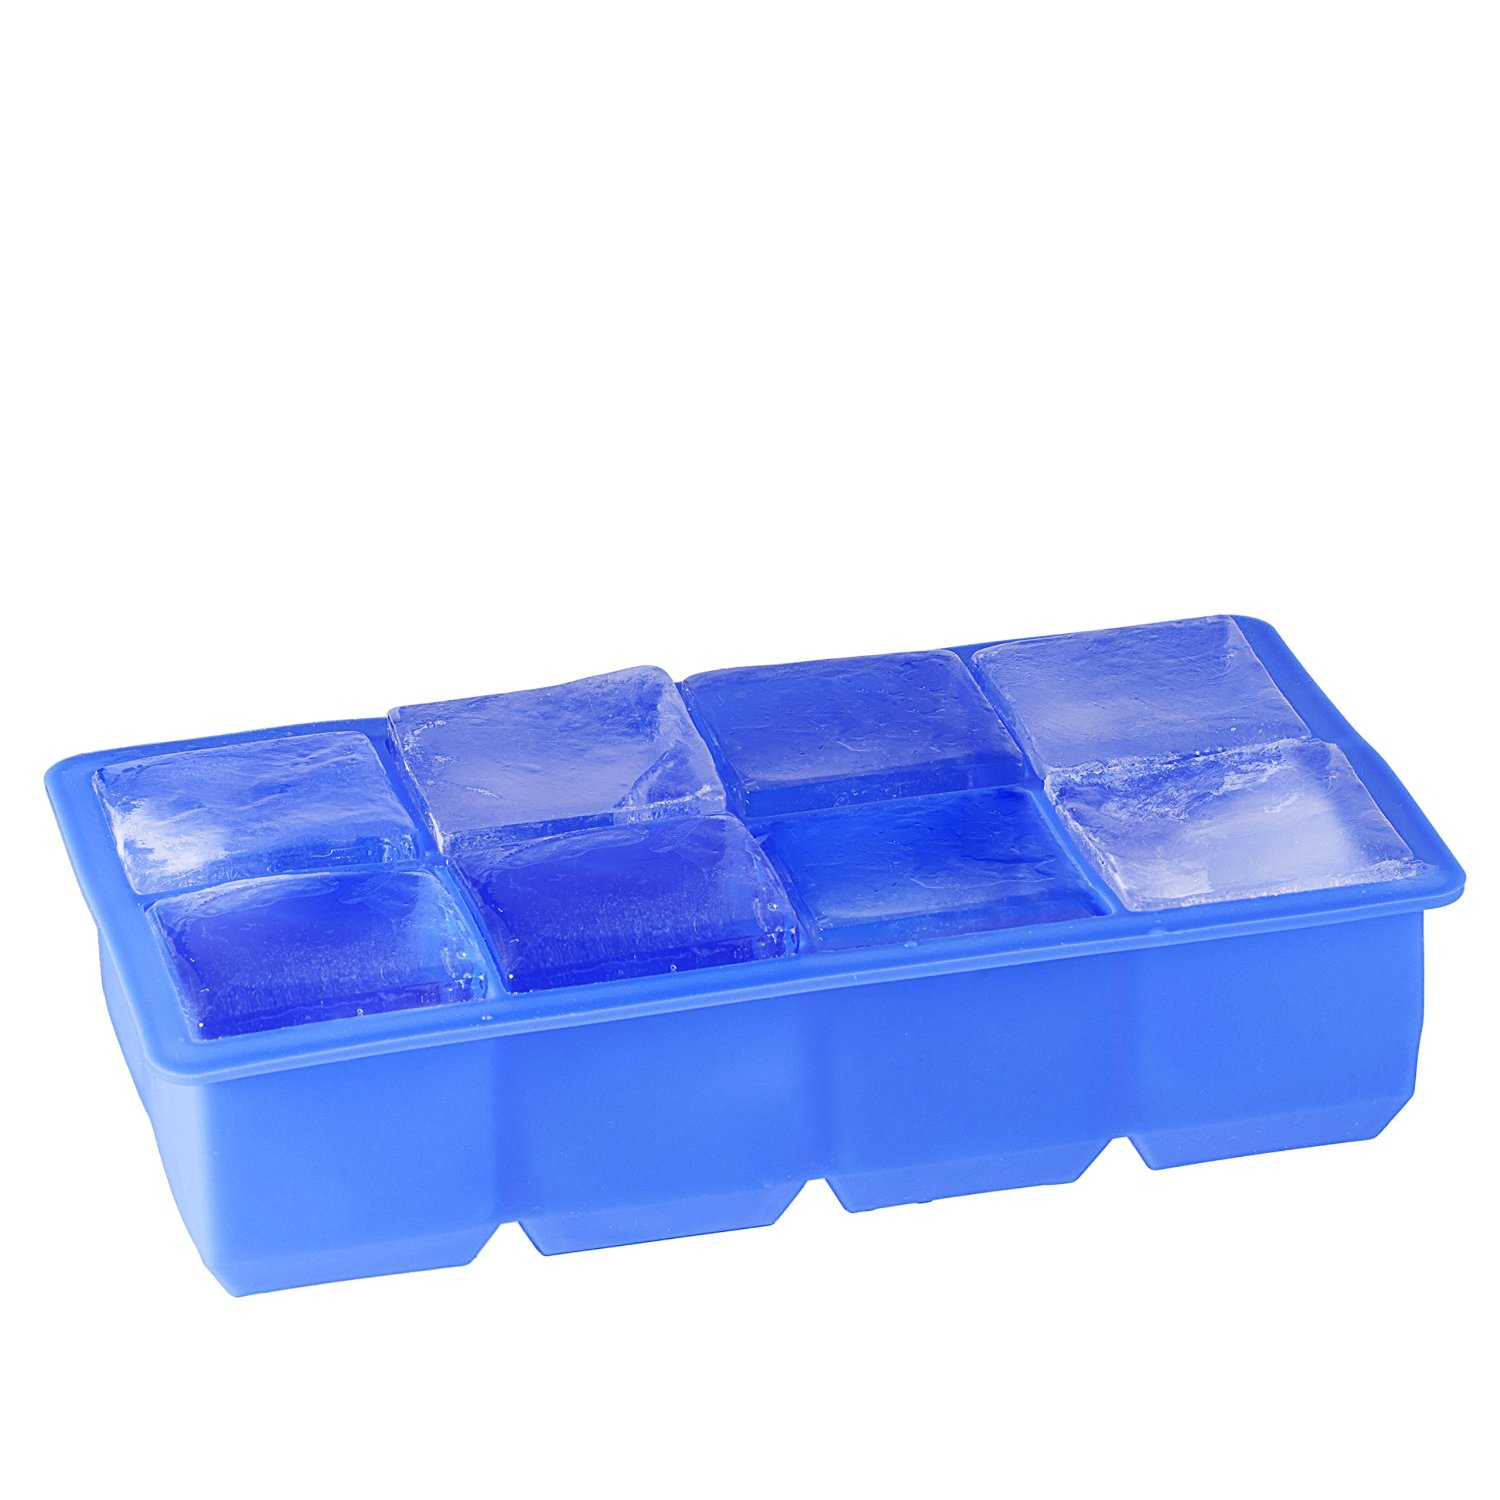 Commercial Ice Trays